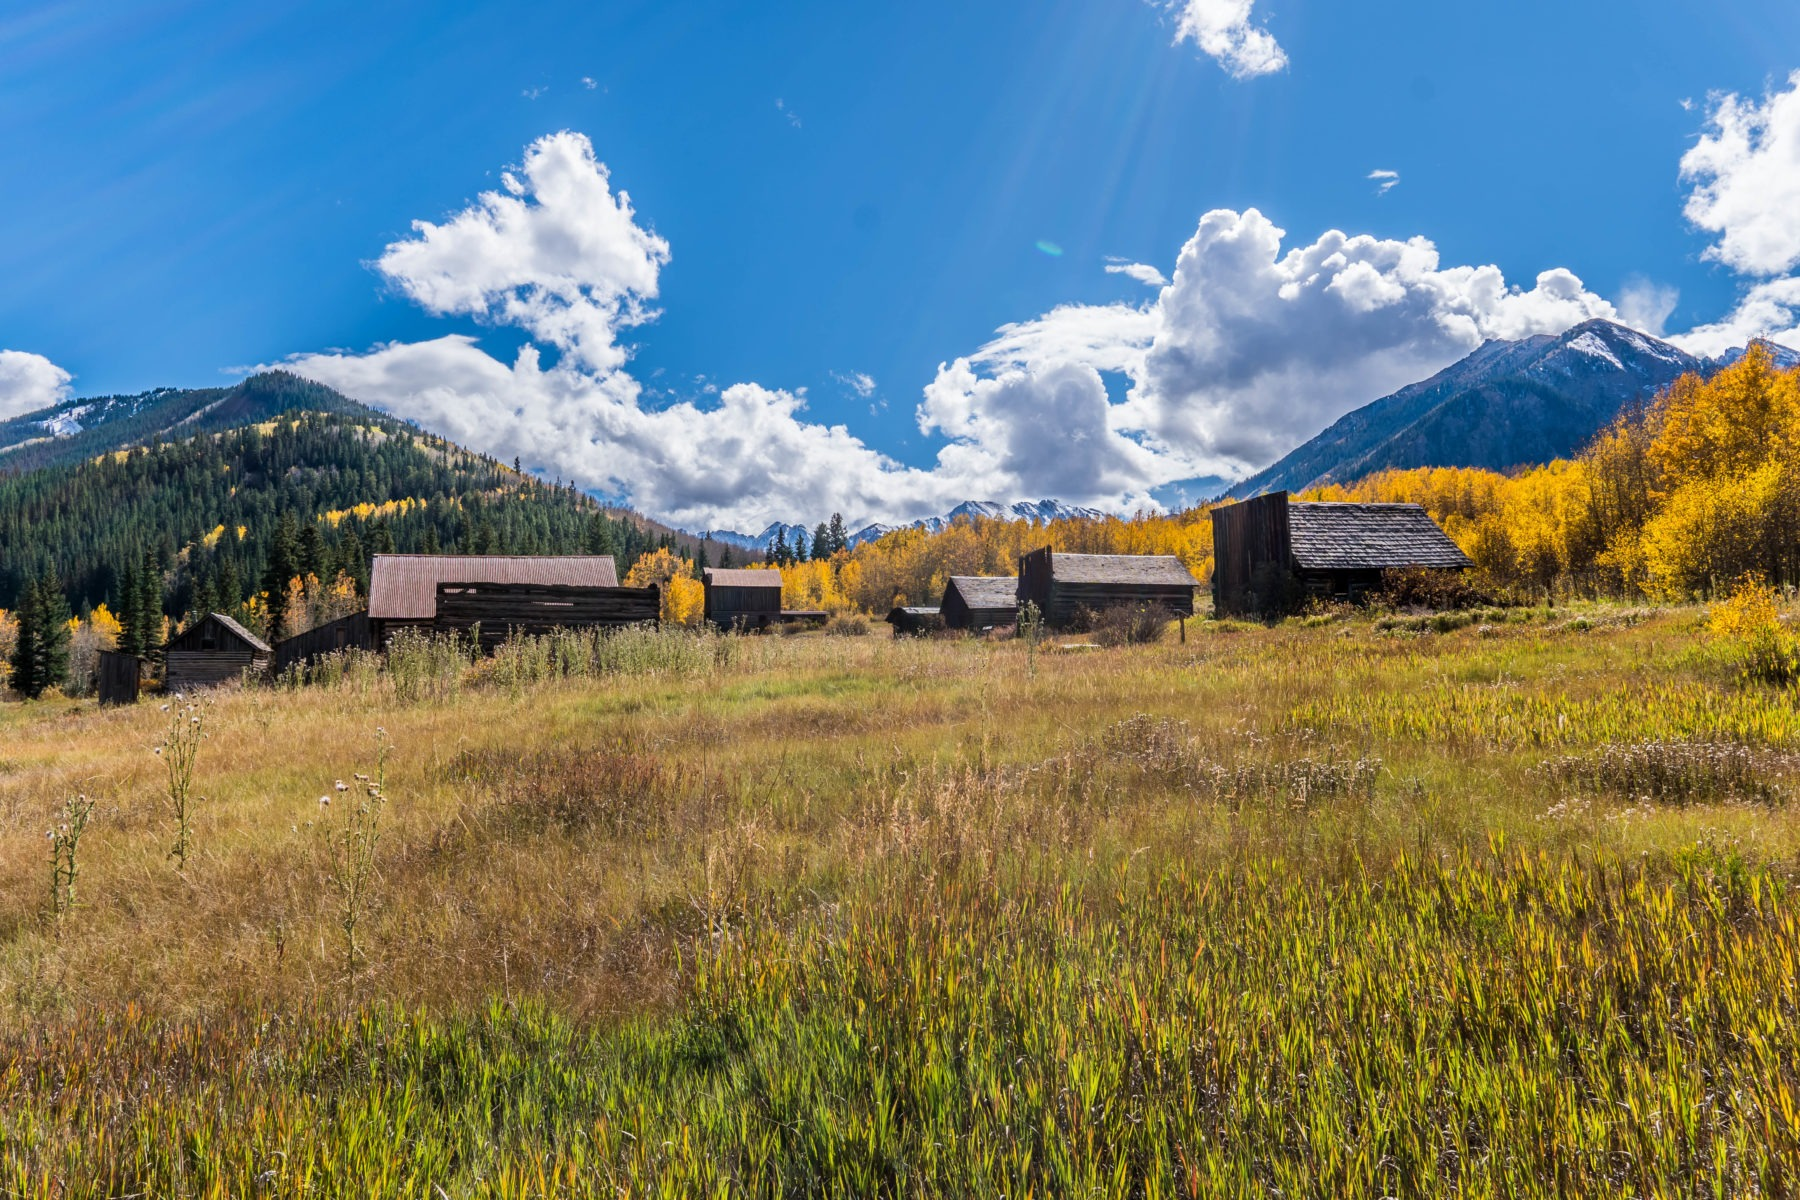 The abandoned mining town of Ashcroft, Colorado